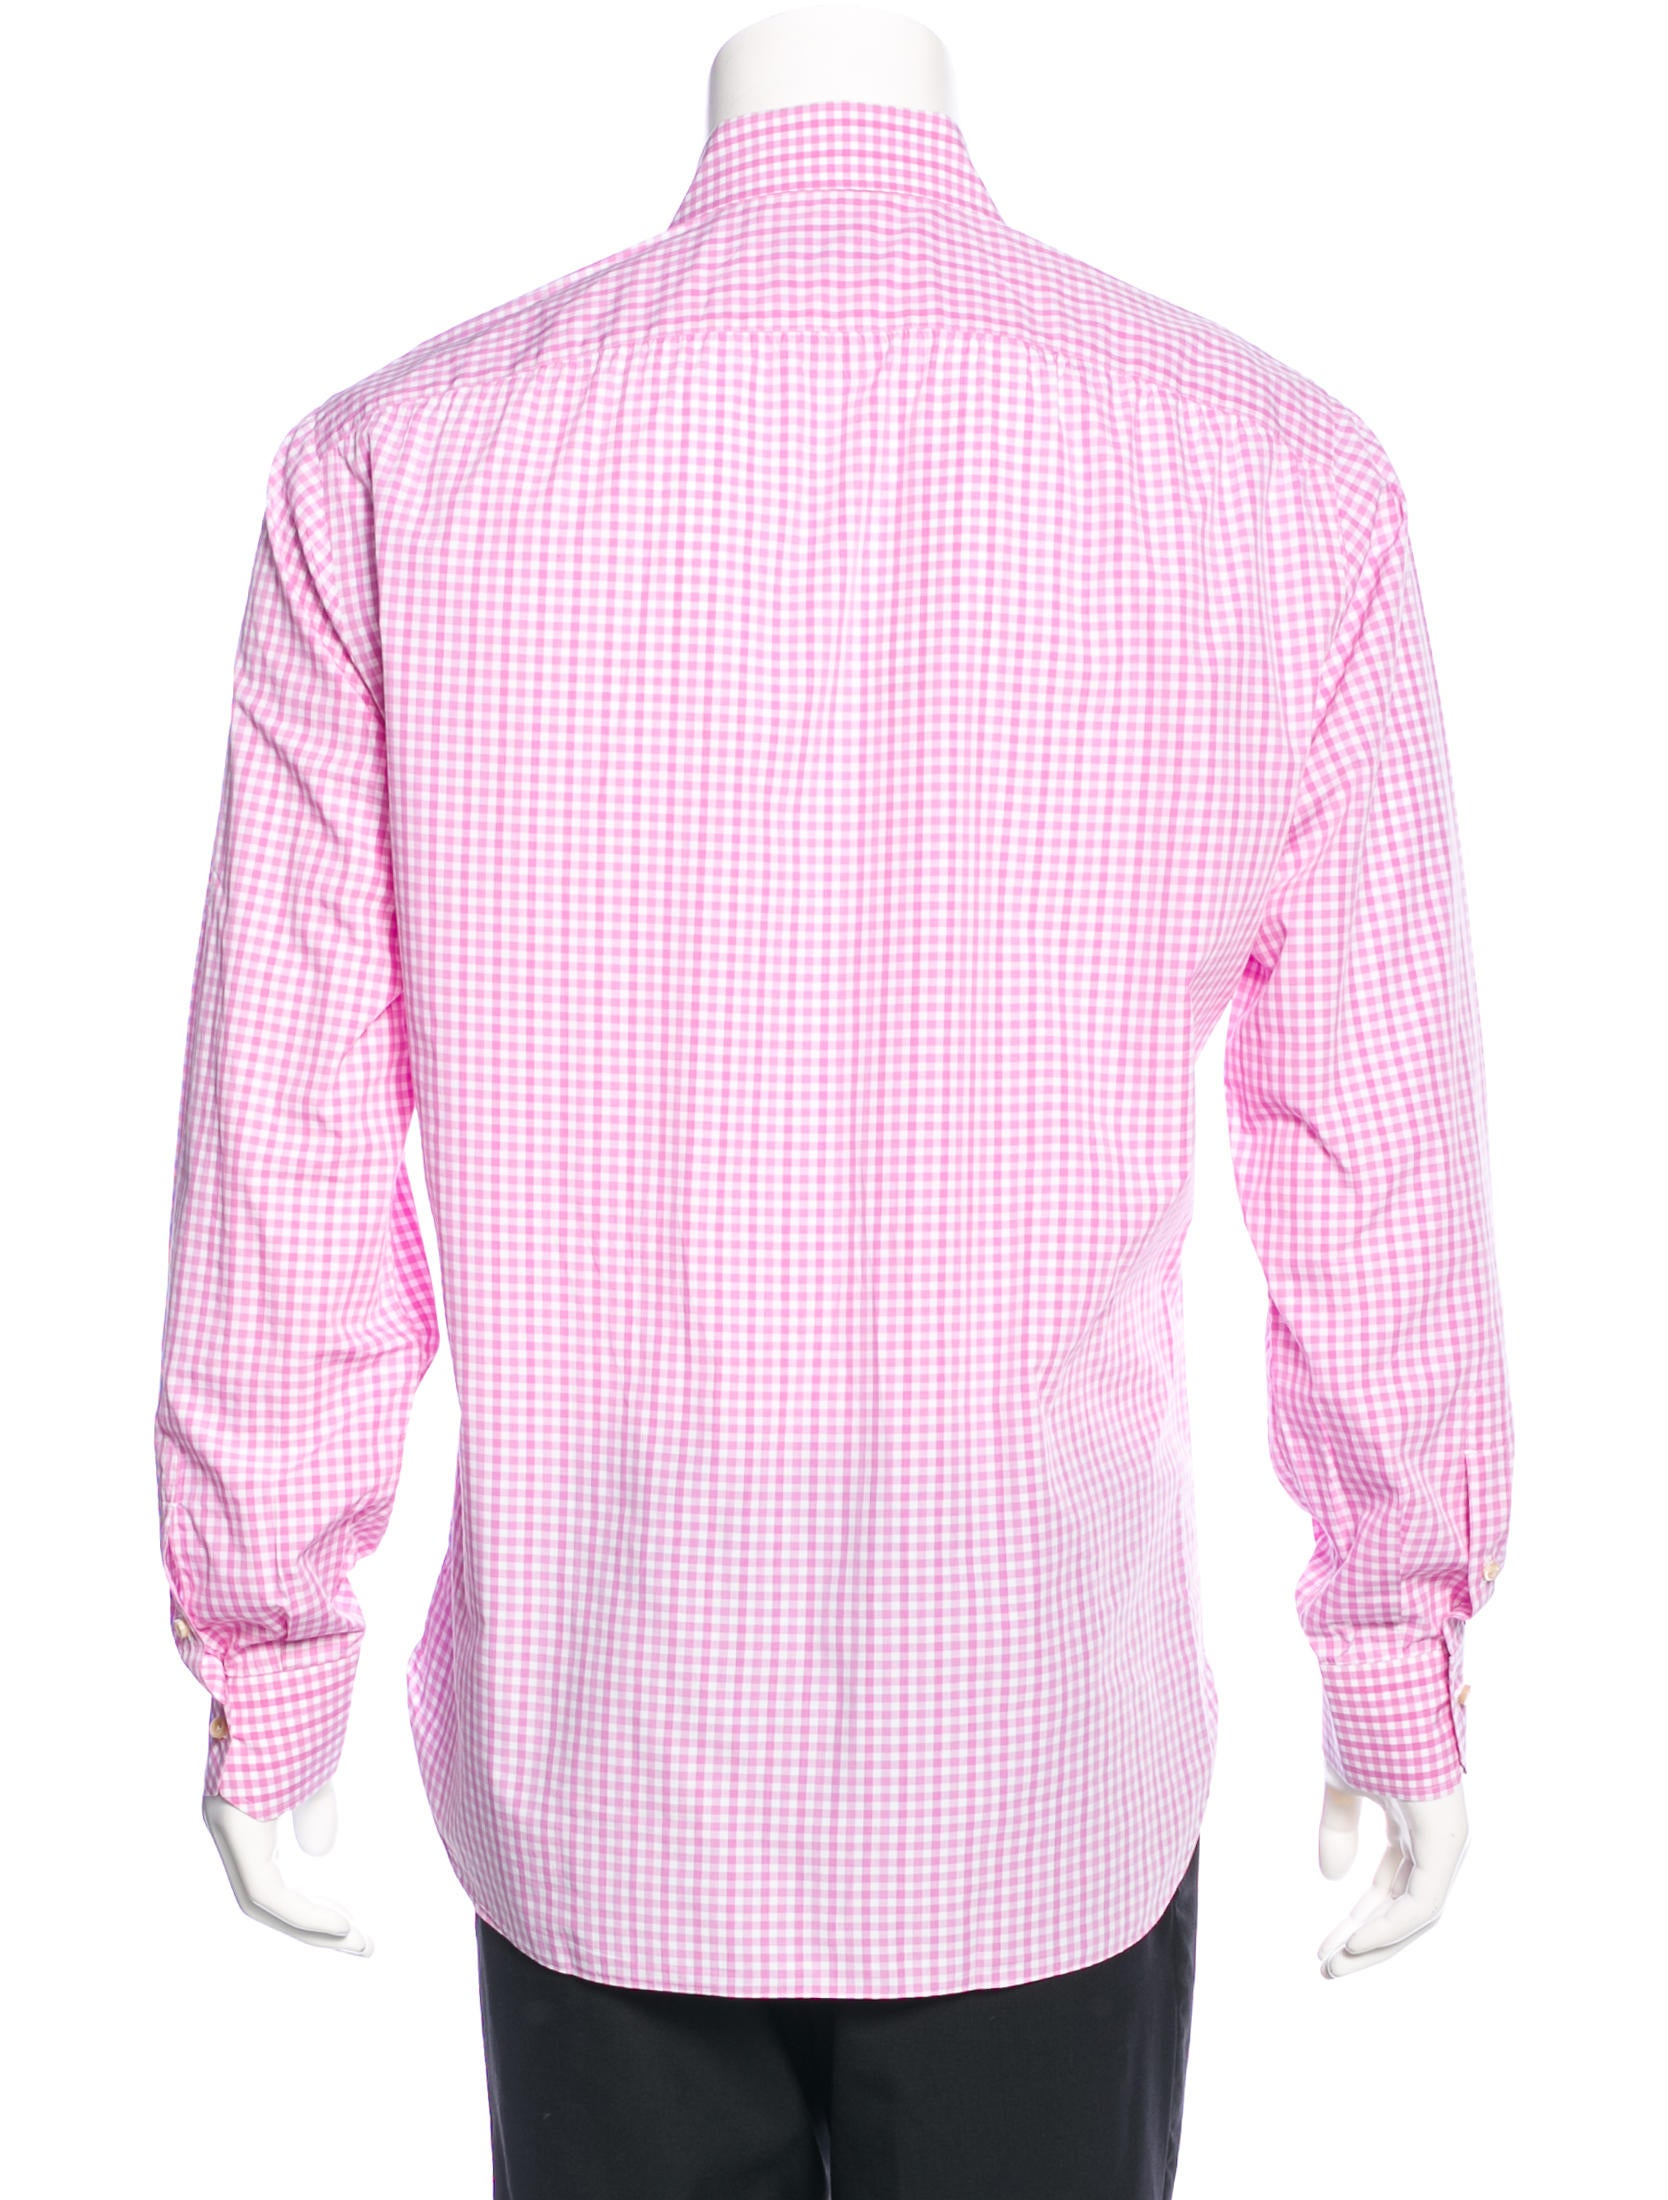 Isaia gingham dress shirt clothing isi20279 the realreal for Gingham dress shirt men